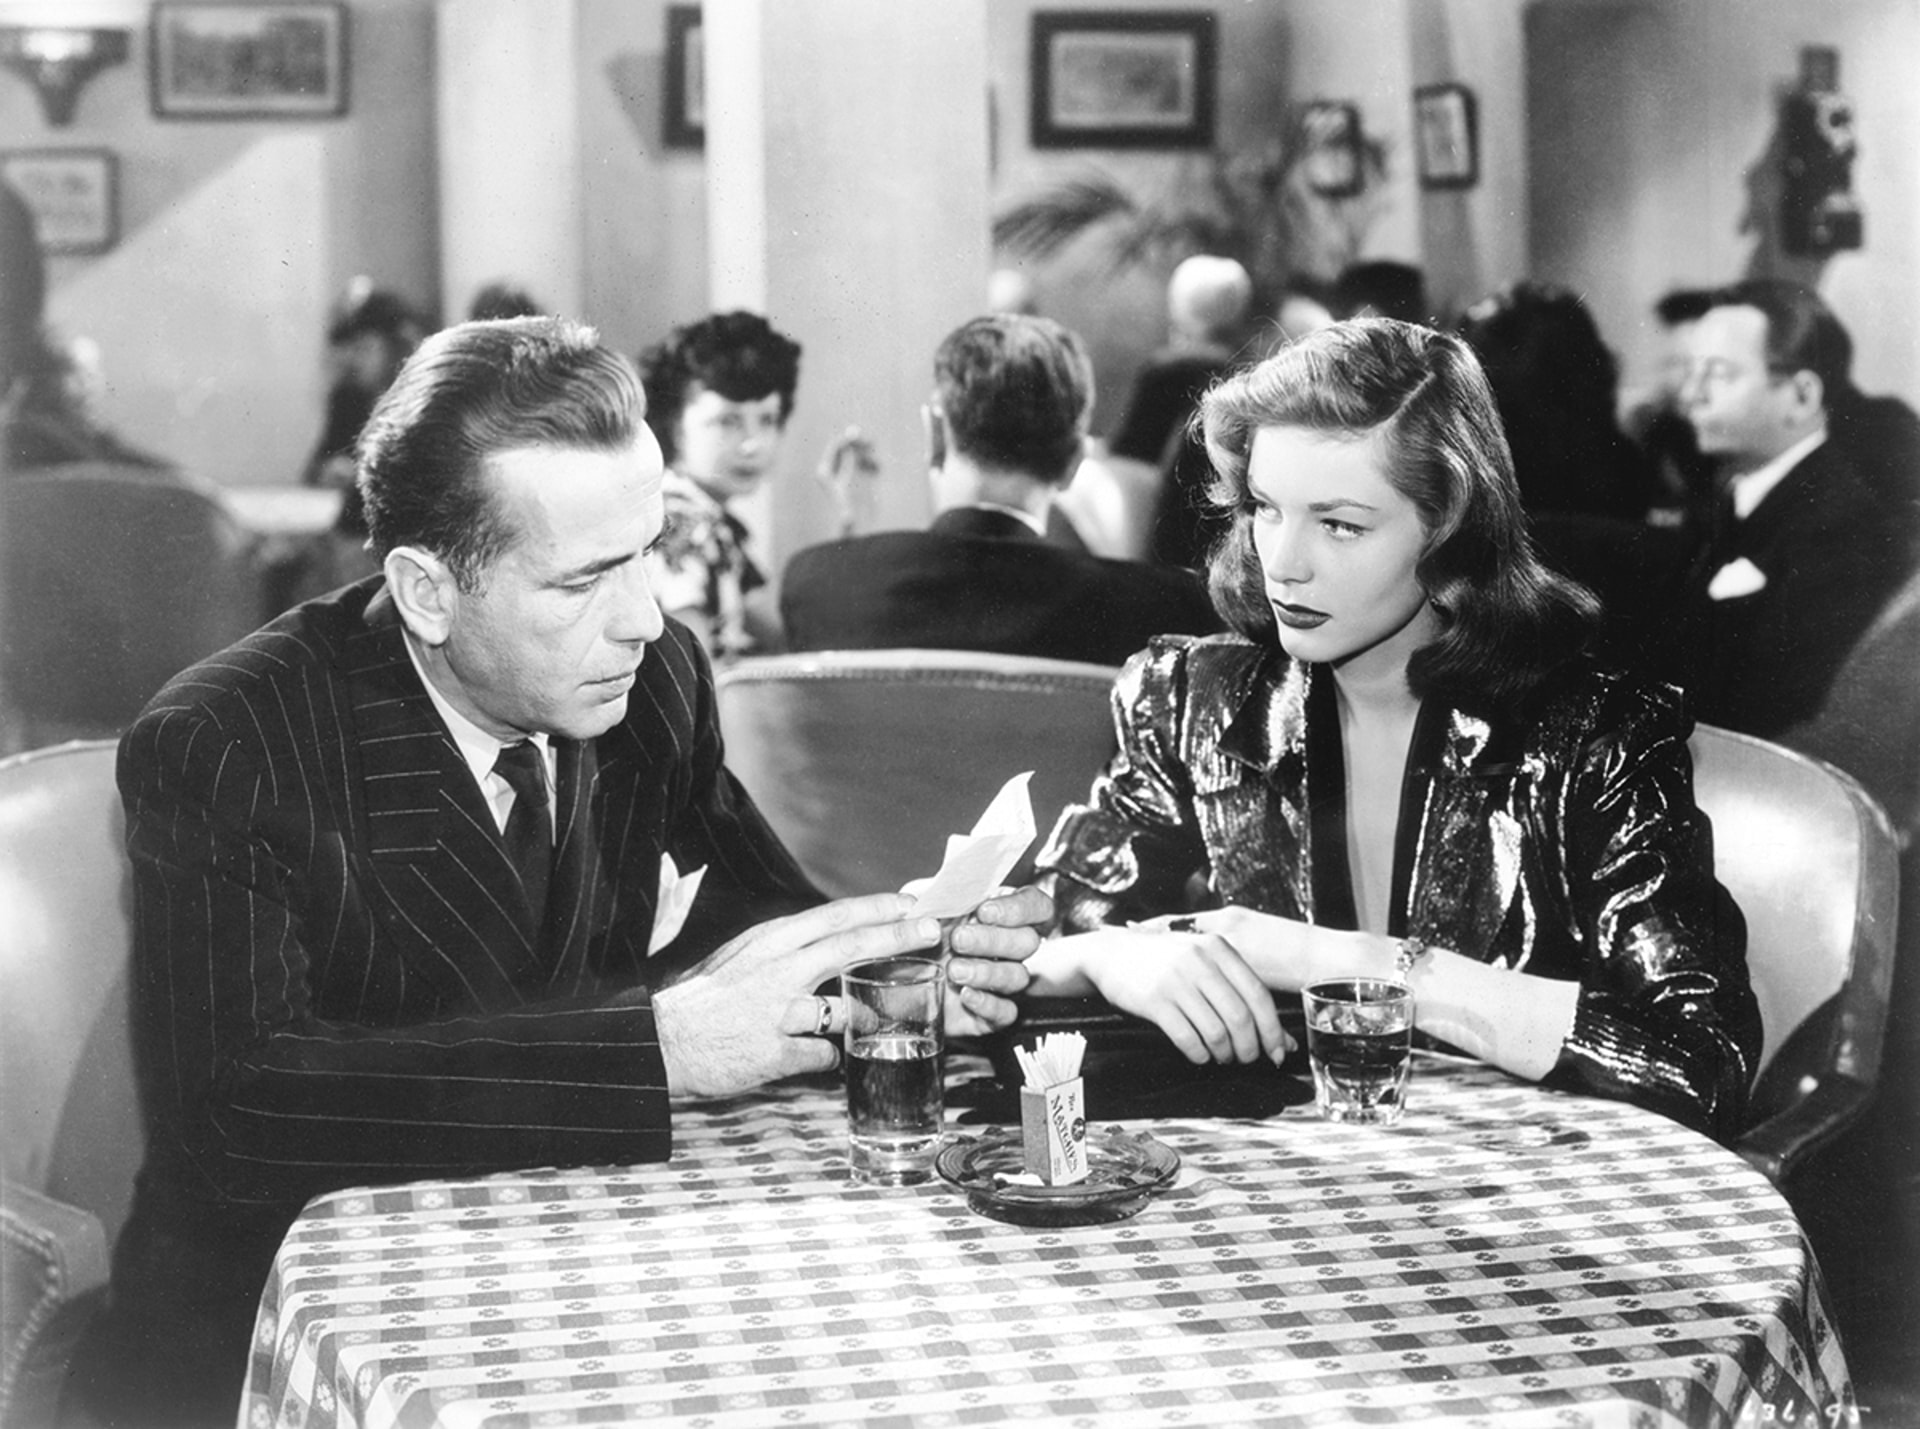 The Big Sleep - Image 11